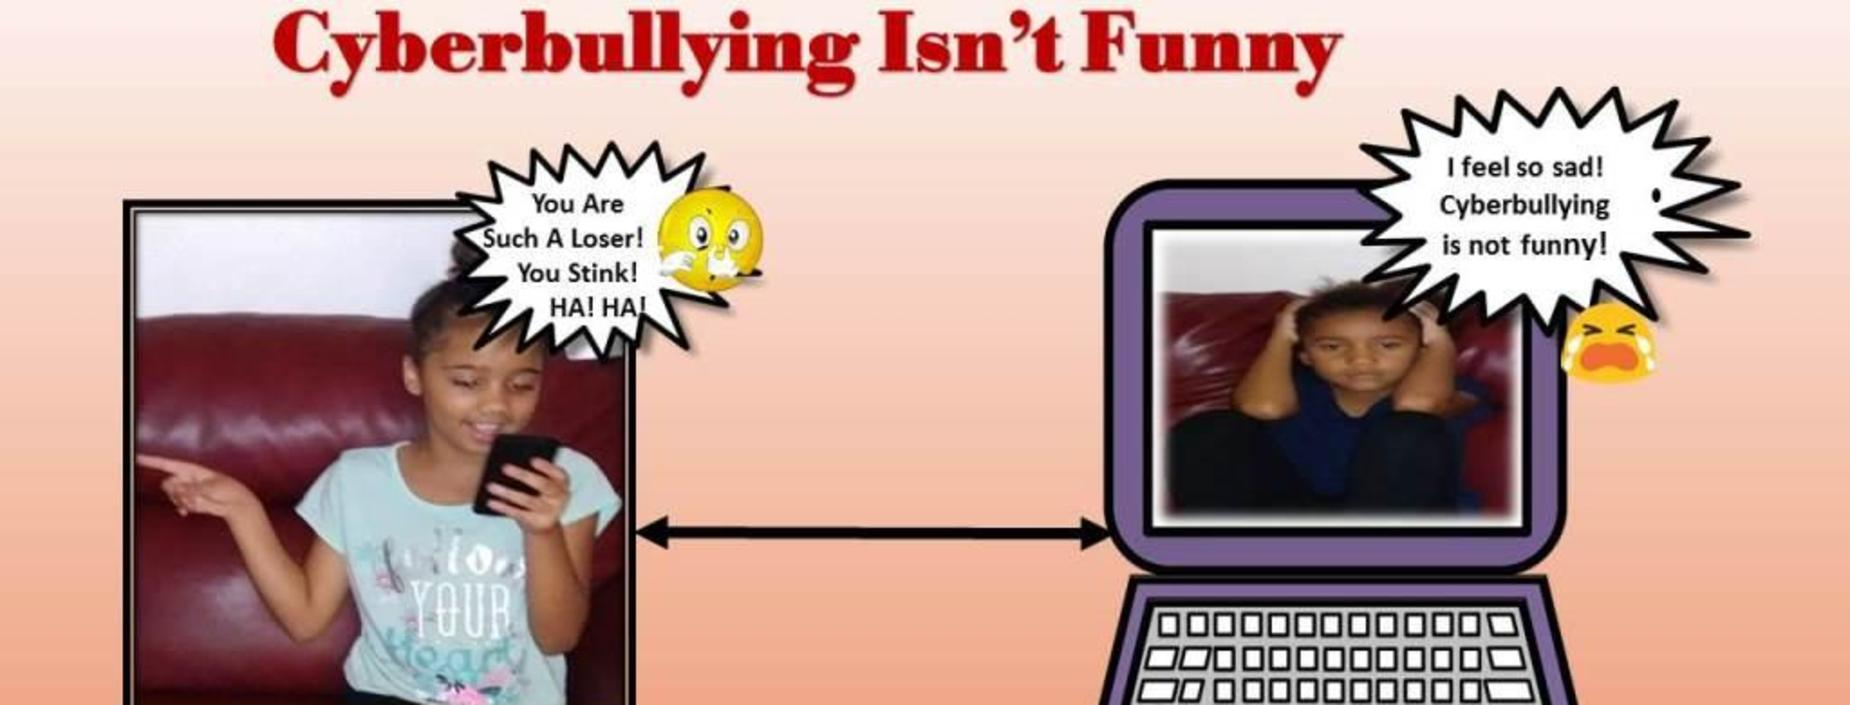 Cyberbullying Contest